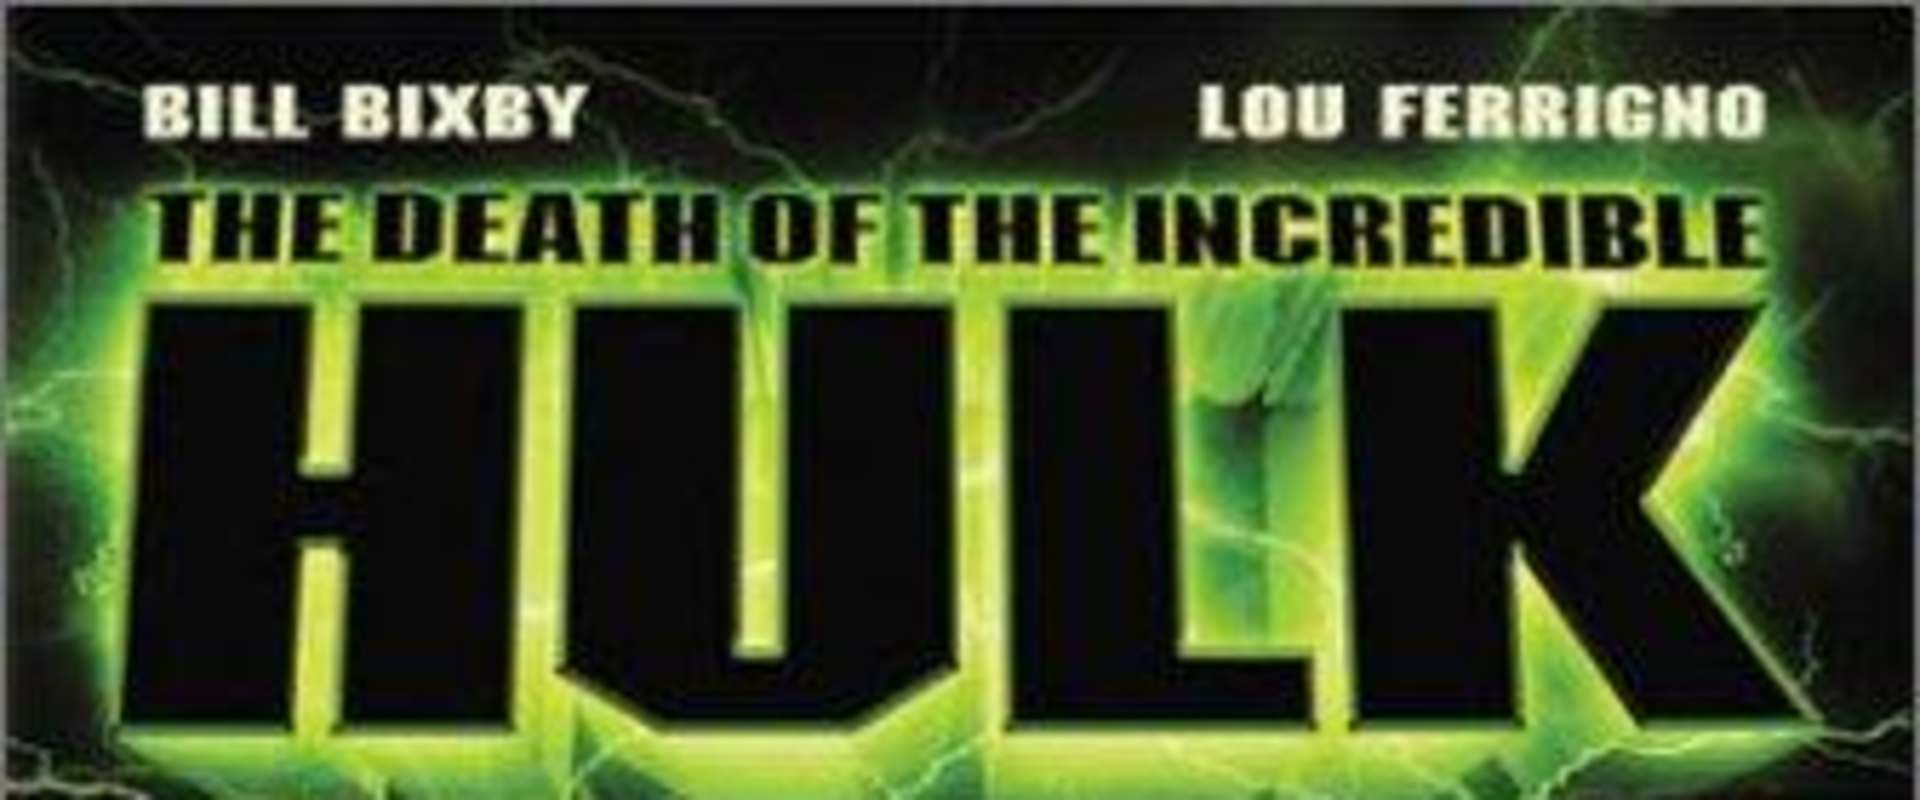 The Death of the Incredible Hulk background 2